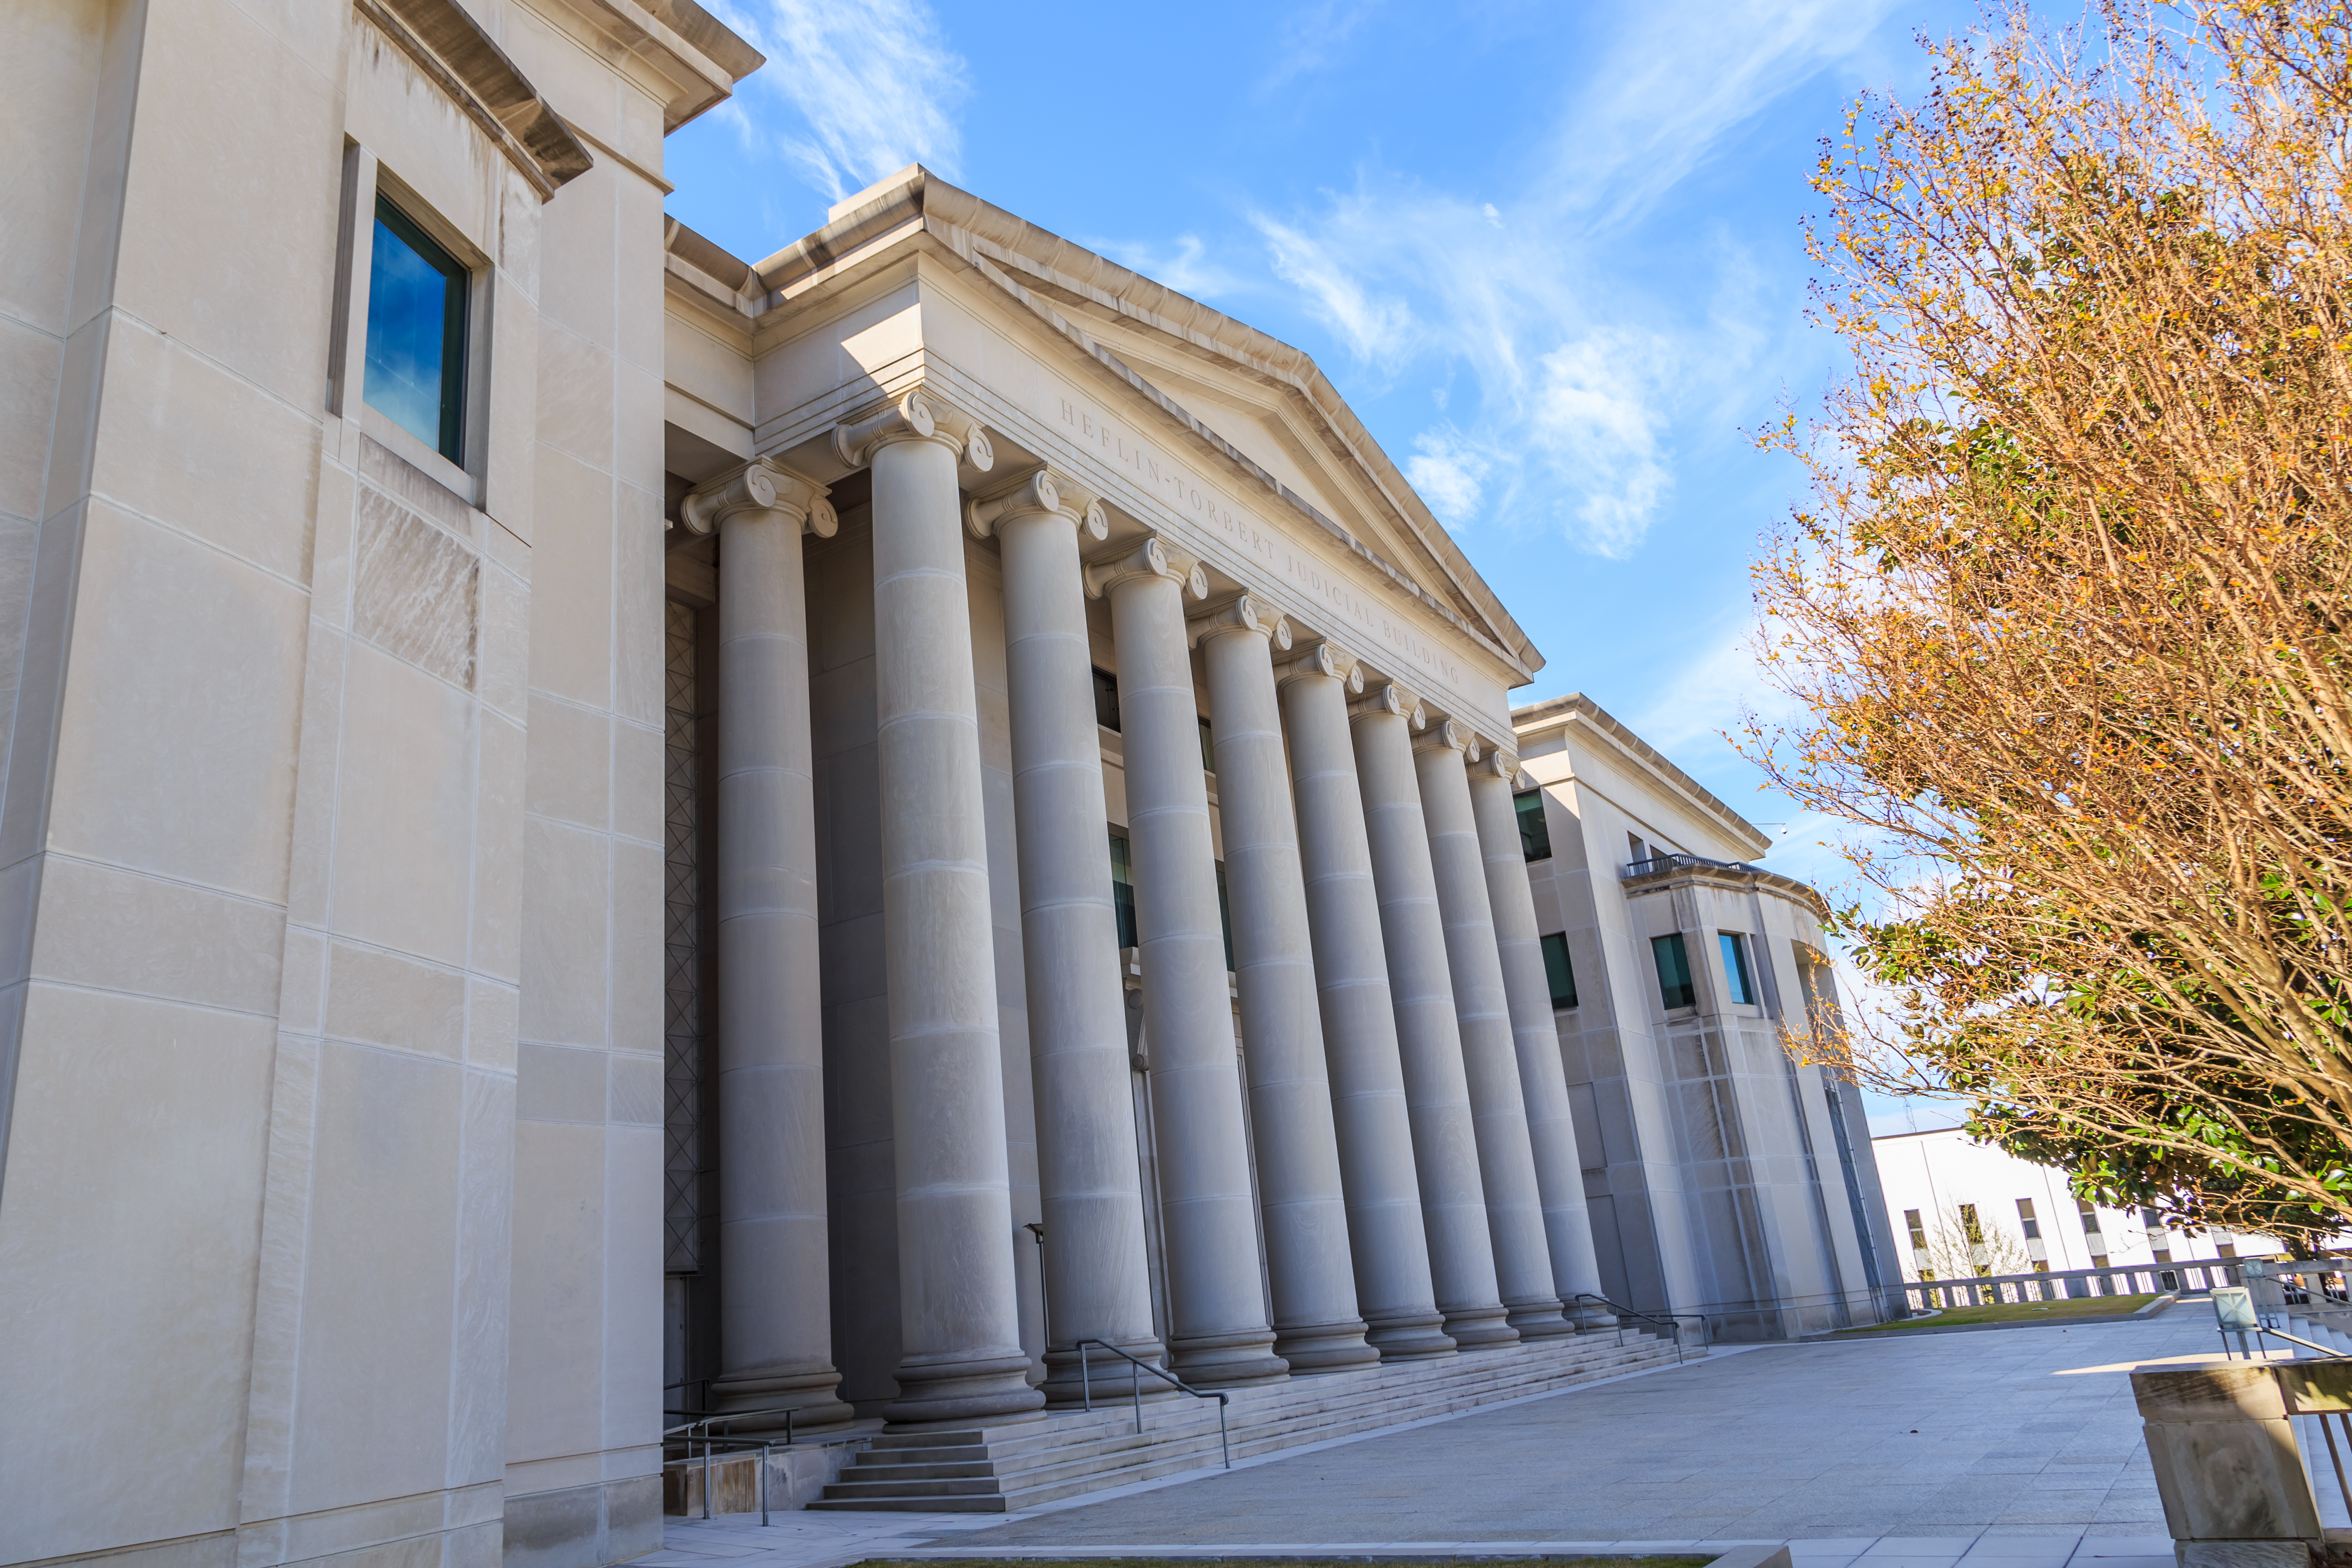 MONTGOMERY, ALABAMA - MARCH 17, 2019- Historic Heflin Torbert or Judicial Building- The Alabama Judicial Building which houses the Supreme Court of Alabama, Alabama Court of Civil Appeals, Mccallk69, Shutterstock.